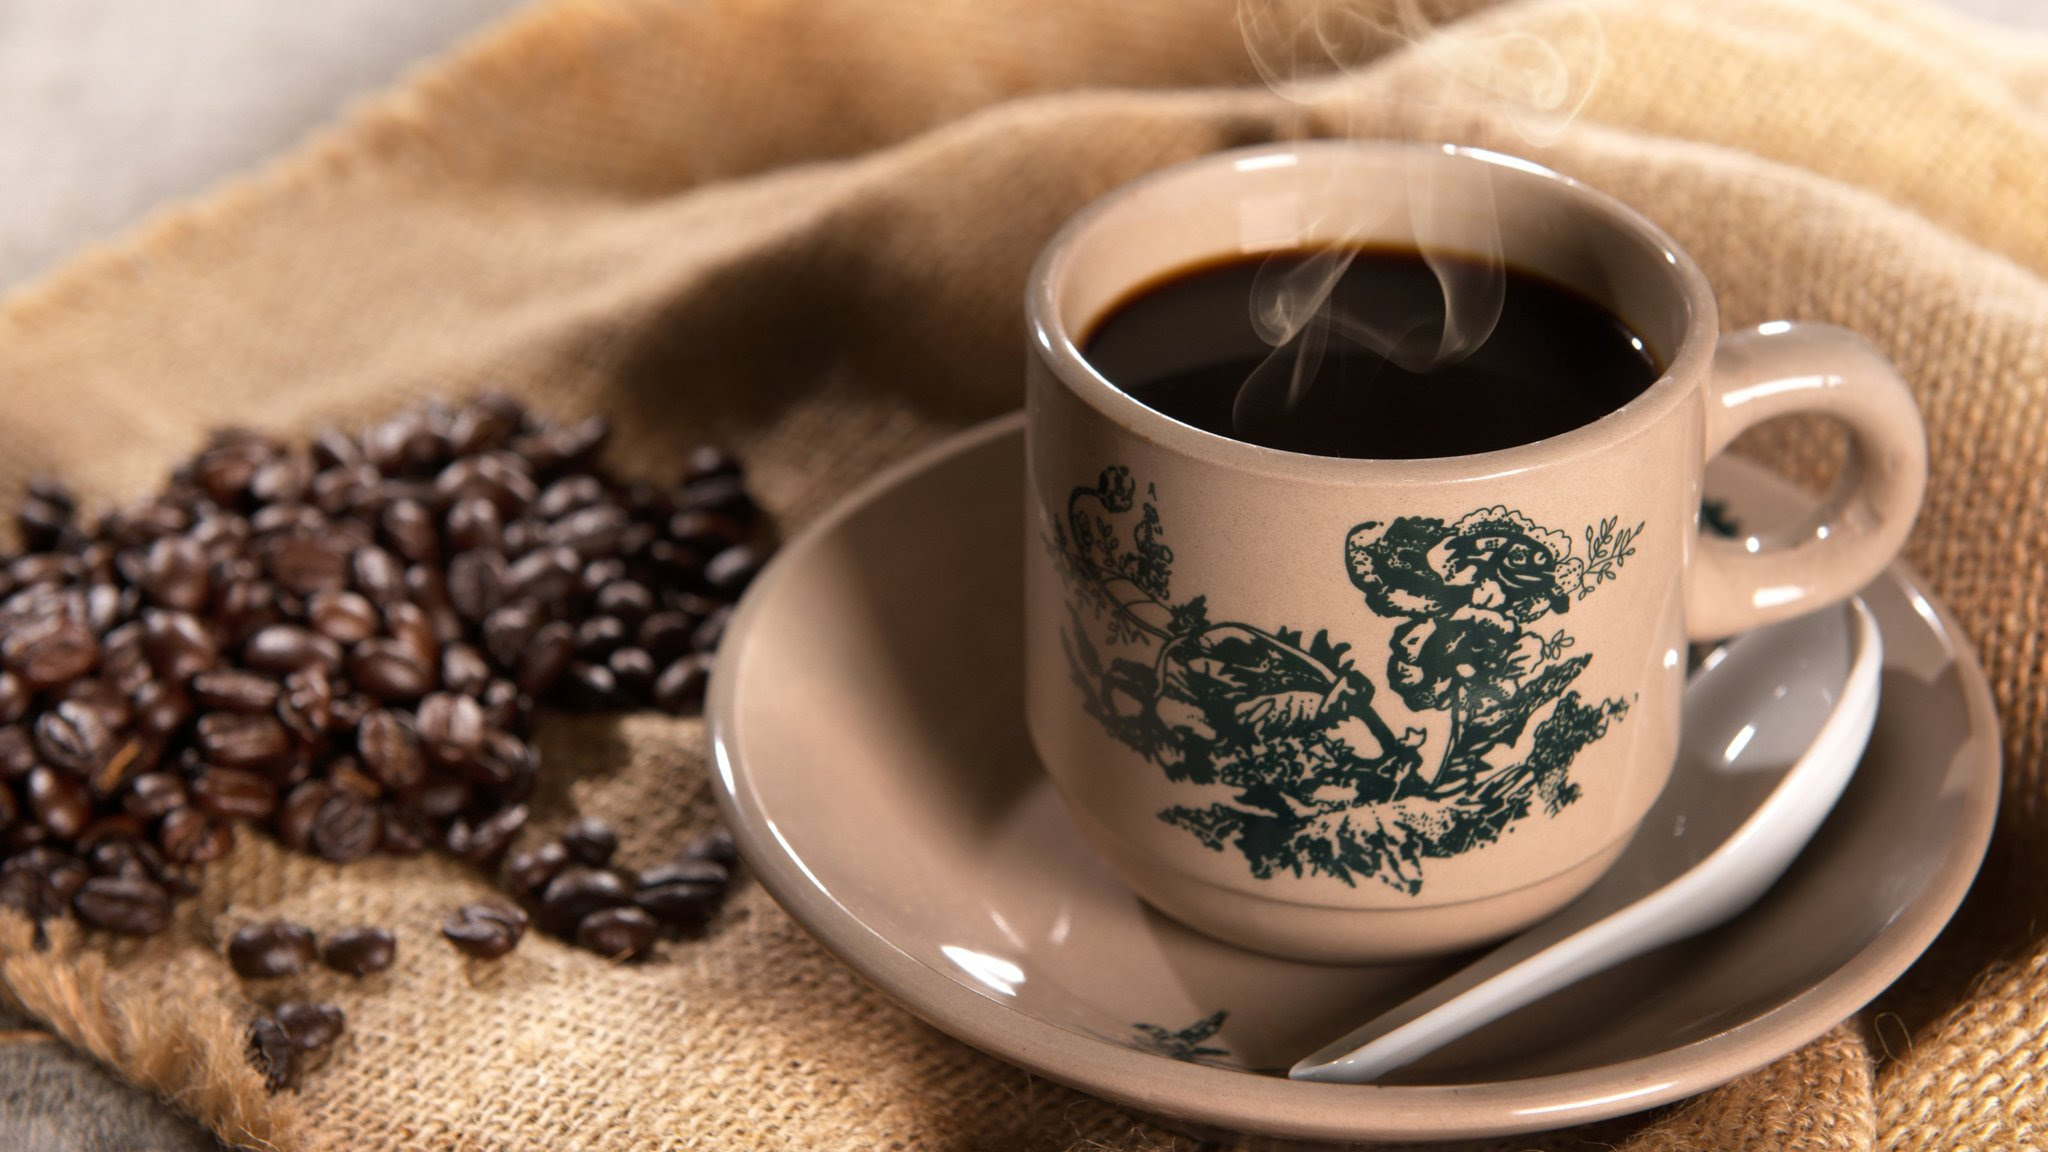 Supply shortage in world coffee market led by robusta beans